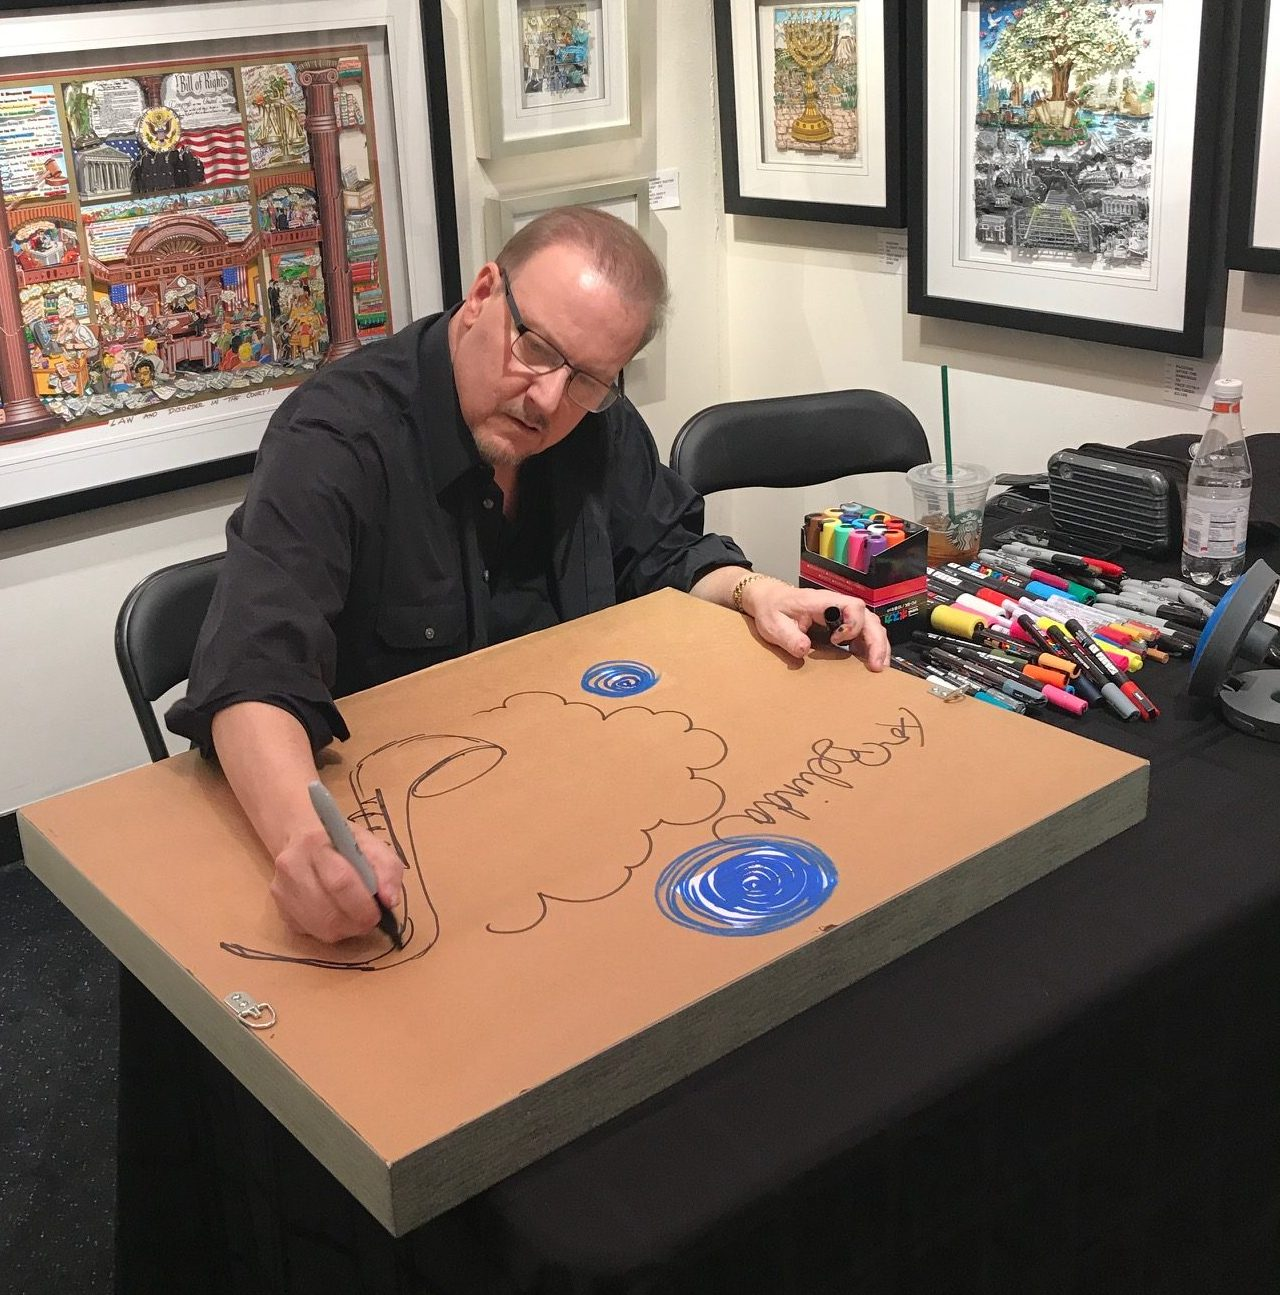 Fazzino sits down at the Wentworth Gallery to start a live drawing for fans to watch